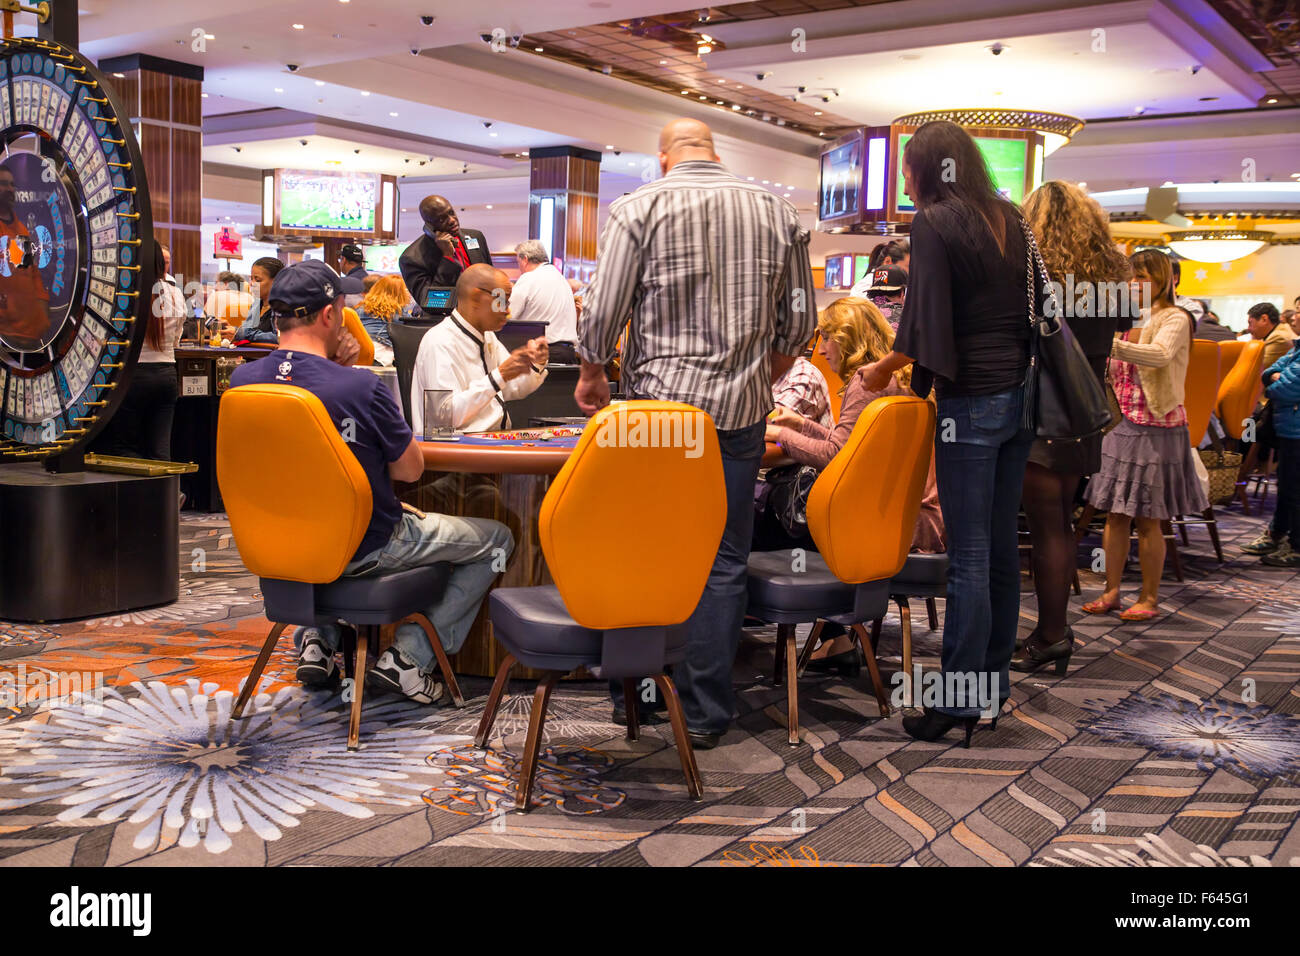 View of people gambling at gaming table at Foxwoods Casino. - Stock Image